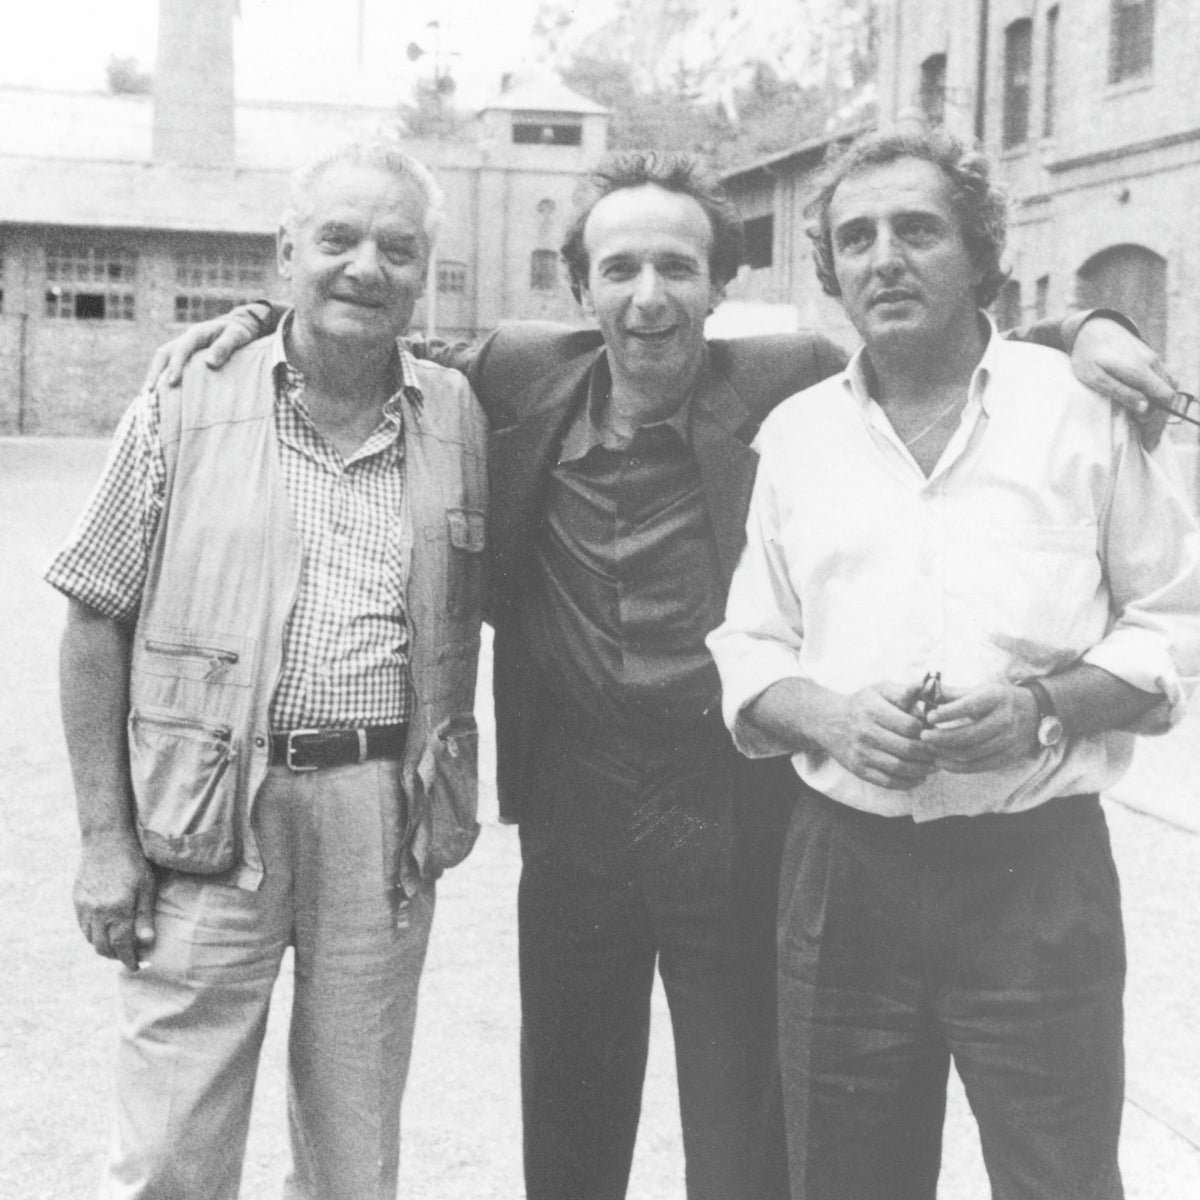 """Holocaust consultant Marcello Pezzetti, left, on the set of """"Life is Beautiful"""" with director Roberto Benigni and Holocaust survivor Shlomo Venezia, who visited Auschwitz with Pezzetti 57 times."""